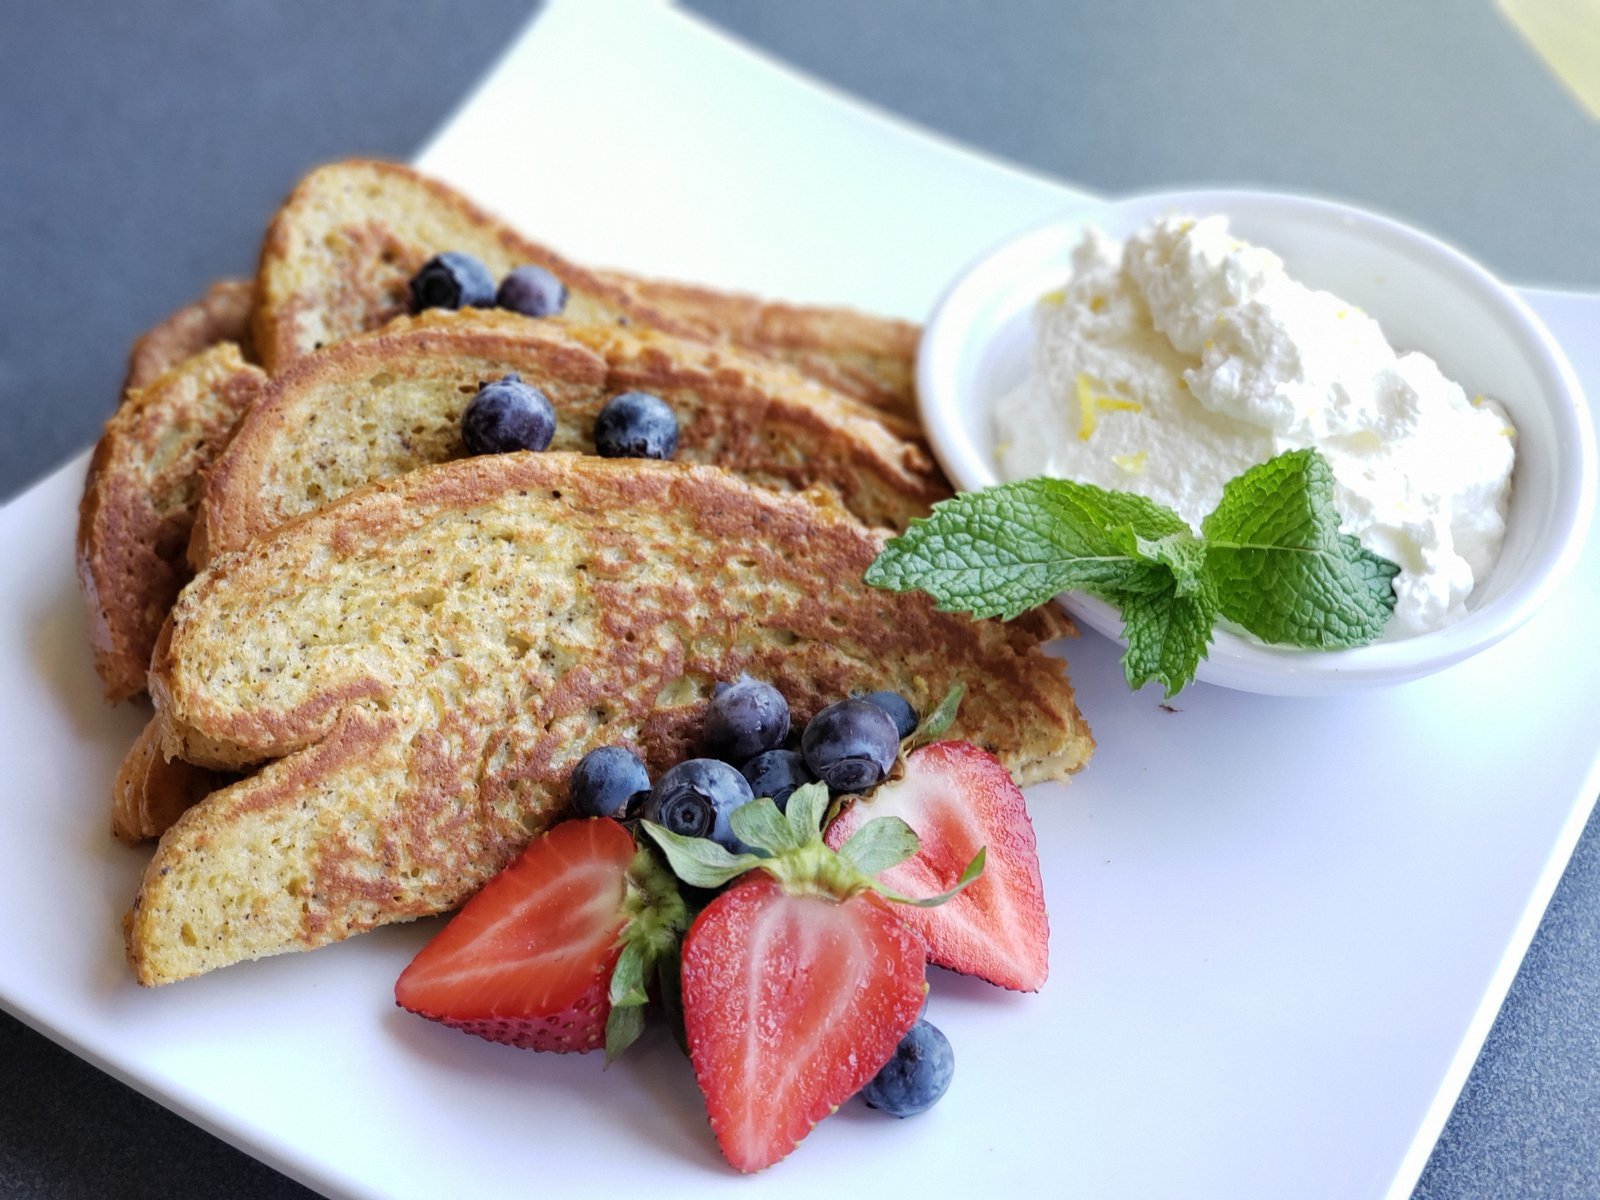 Challah french toast with berries and whipped cream